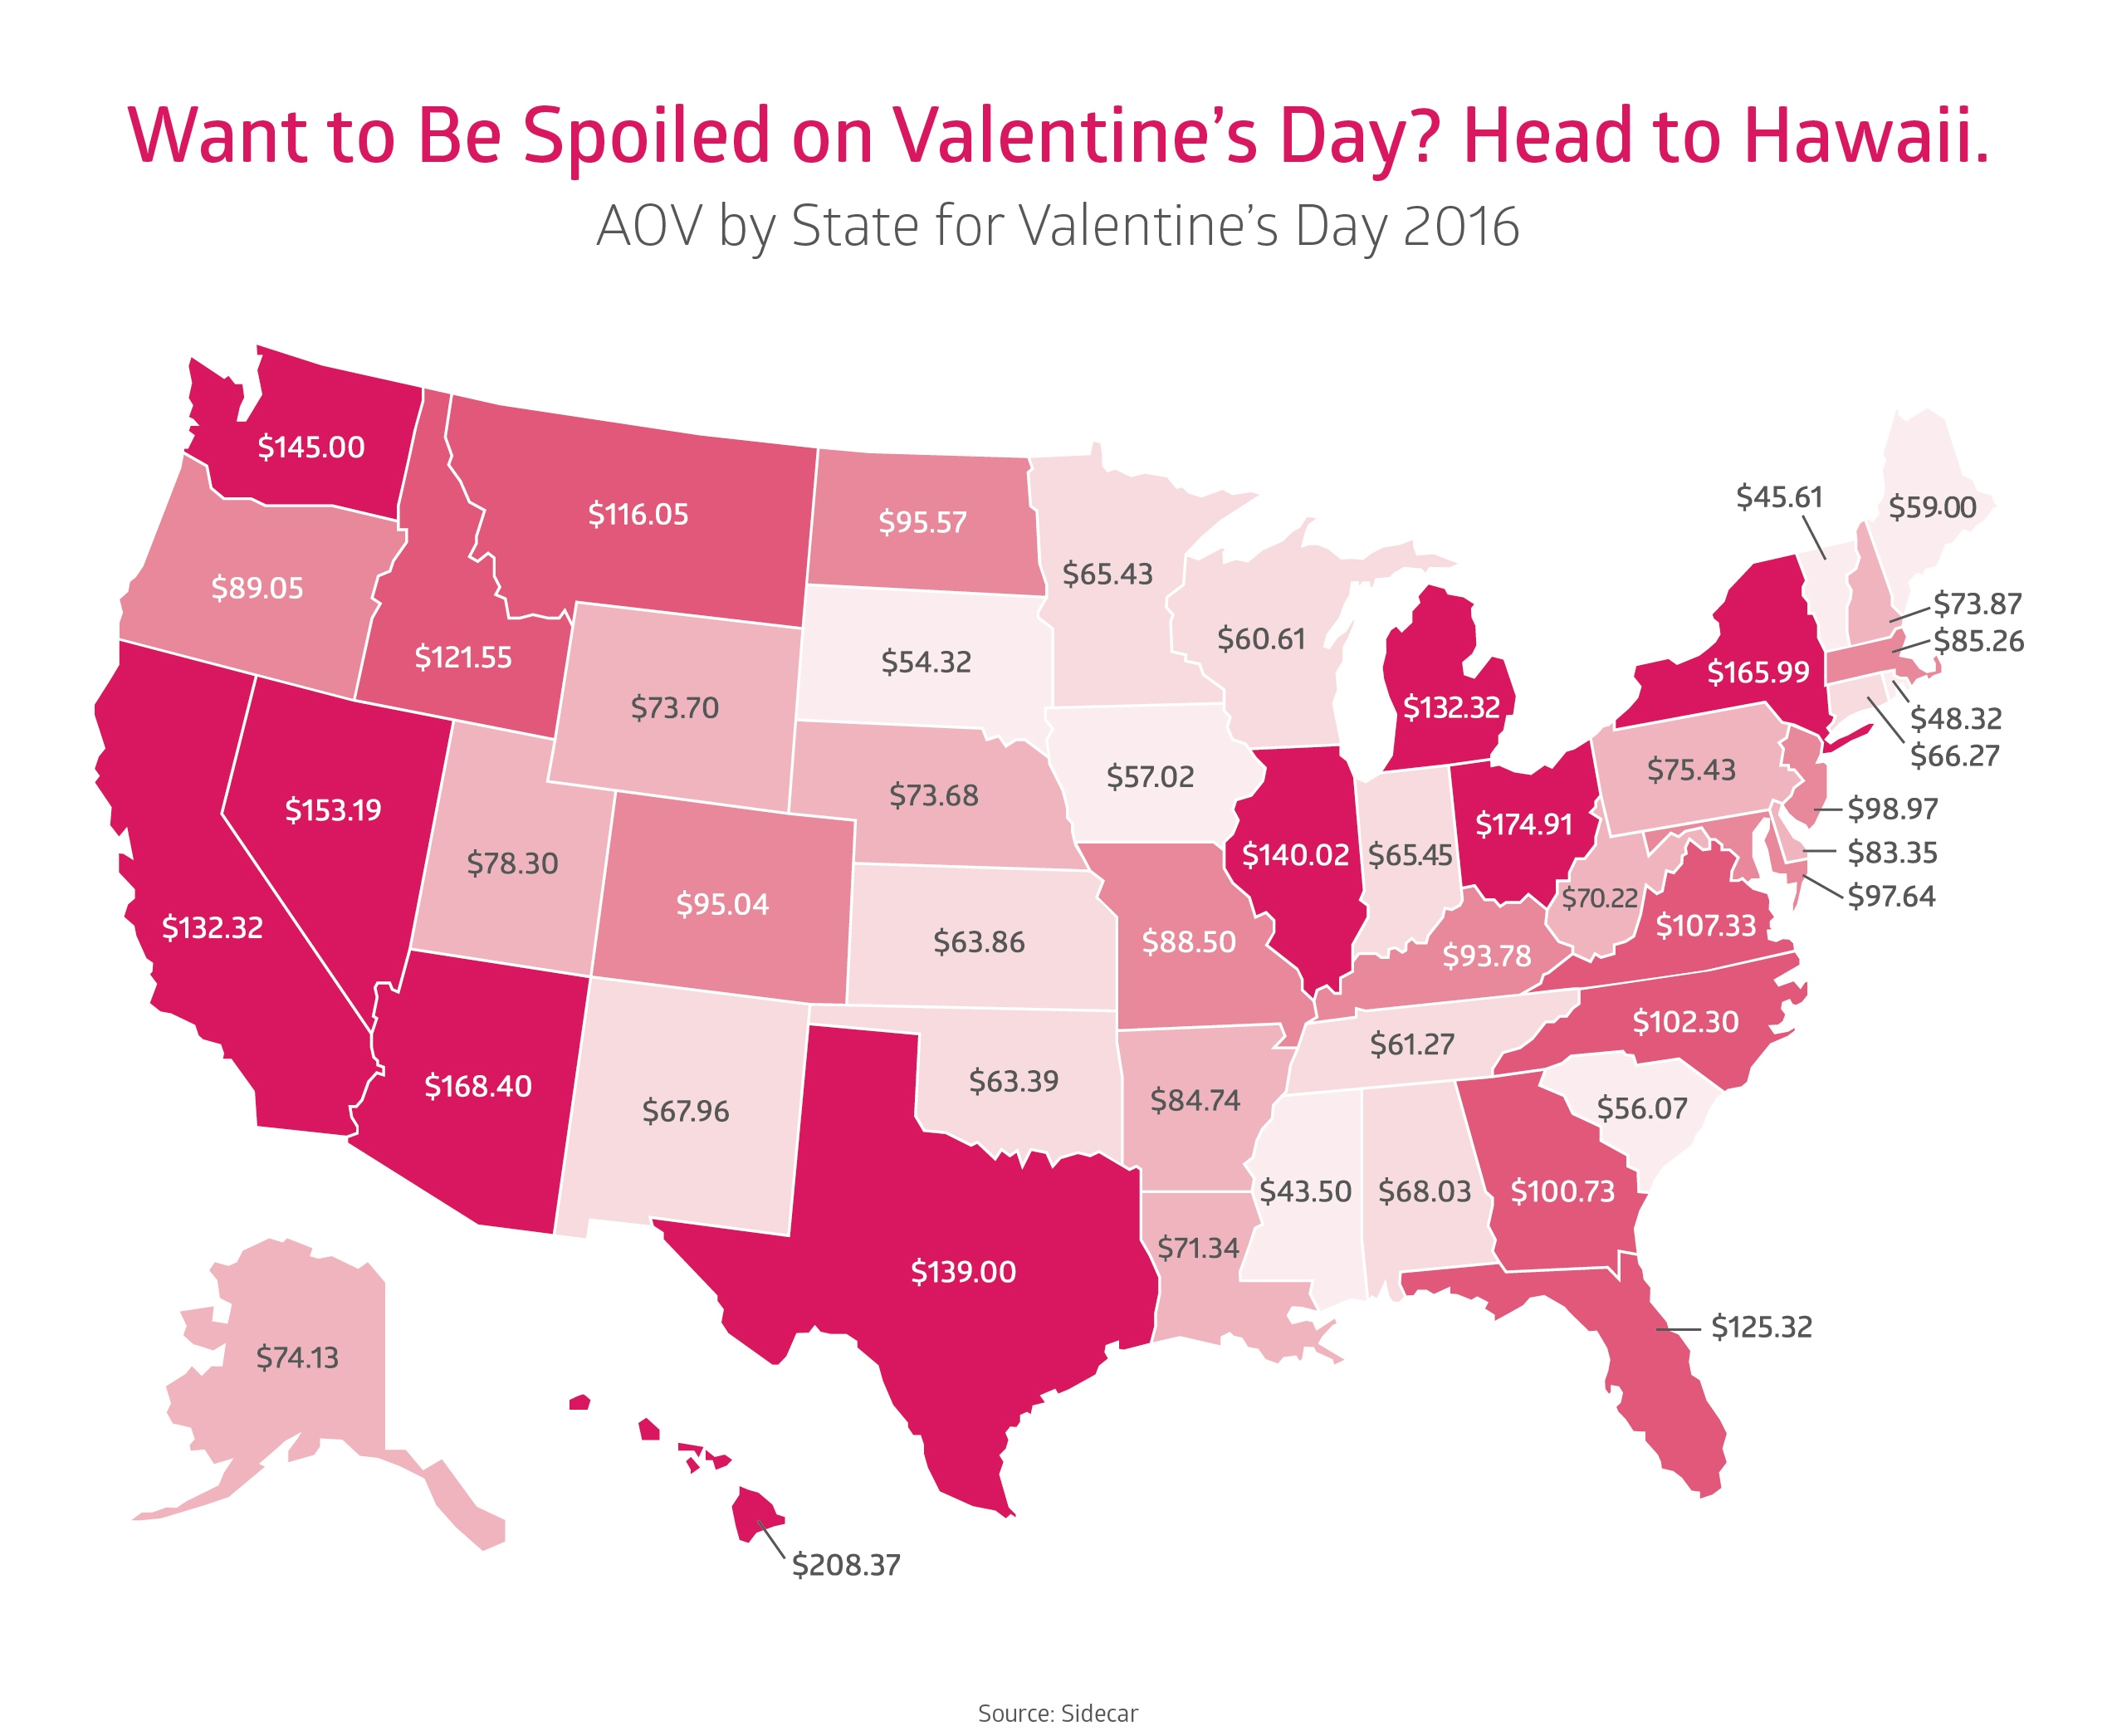 Retailers' AOV by State for the Valentine's Day Season